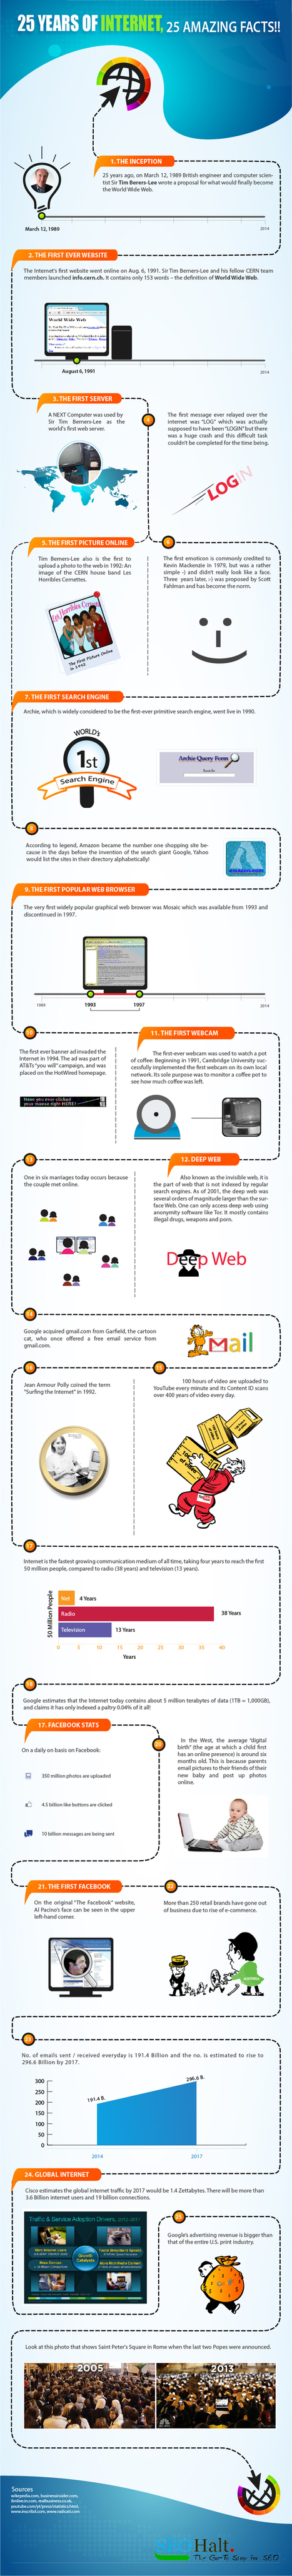 25 Amazing Facts about the Internet [Infographic] | Learning & Mind & Brain | Scoop.it